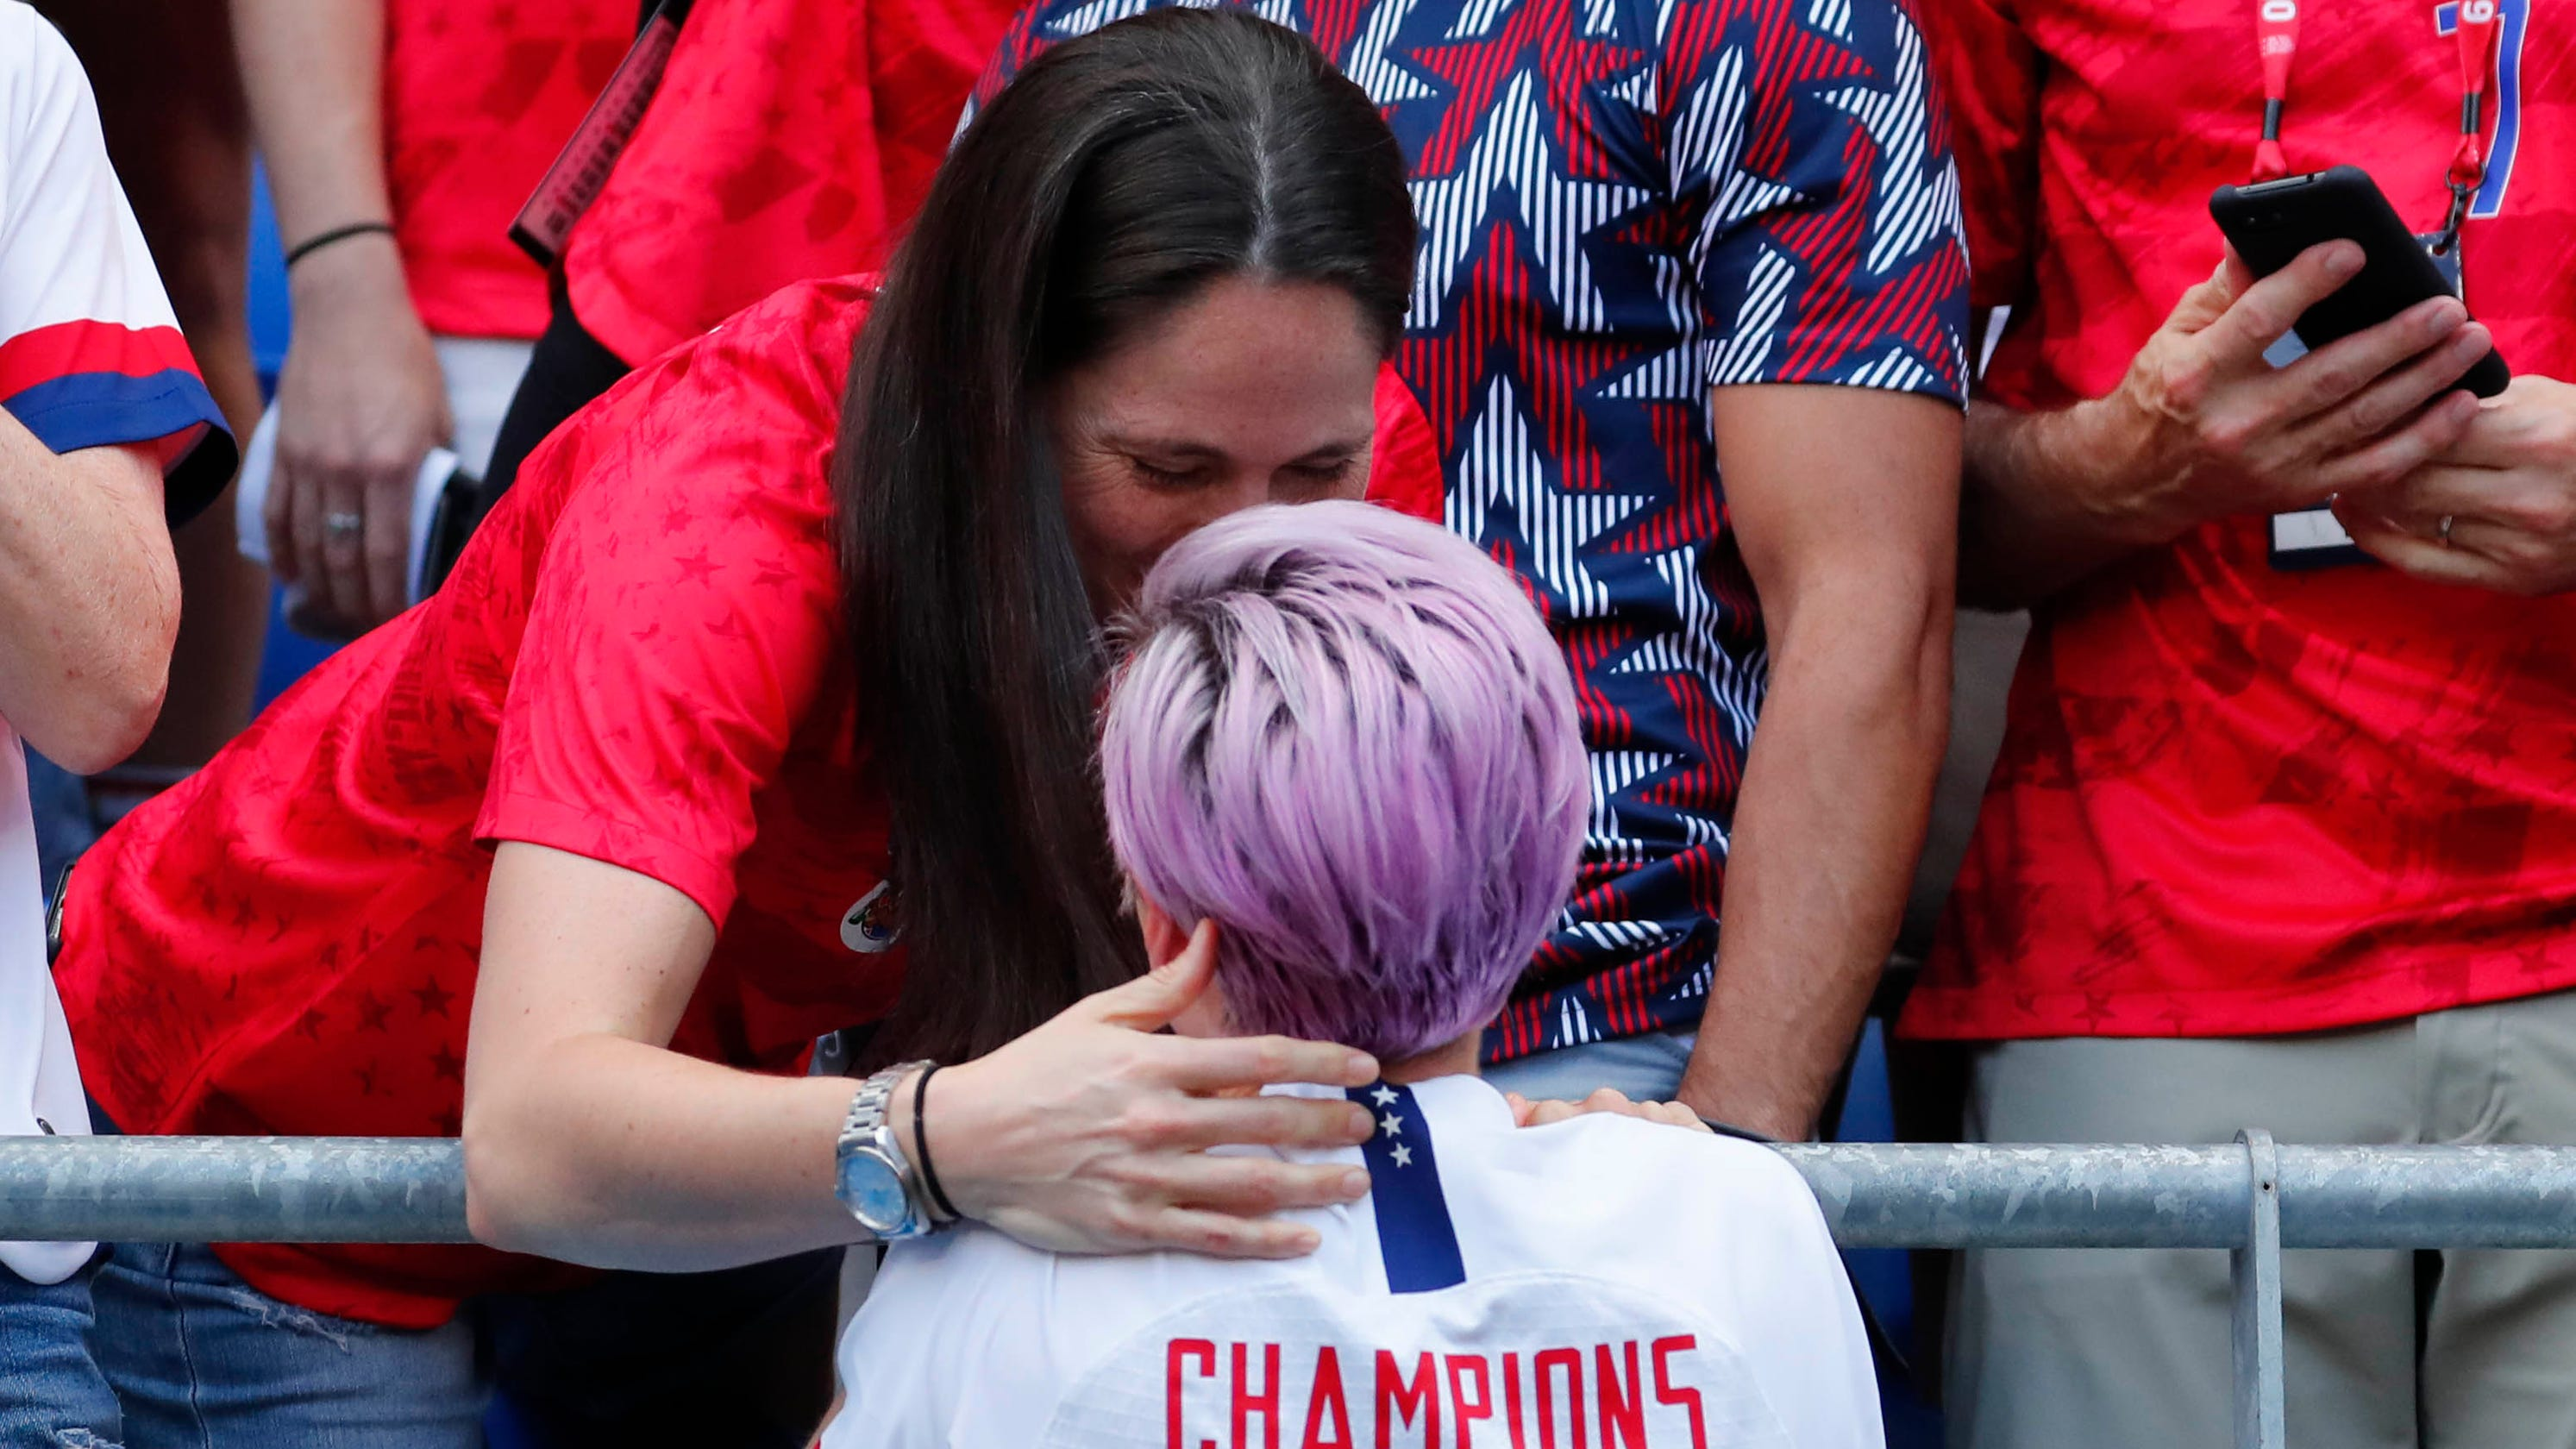 WNBA star Sue Bird, Megan Rapinoe's girlfriend, says calling President Trump out is necessary